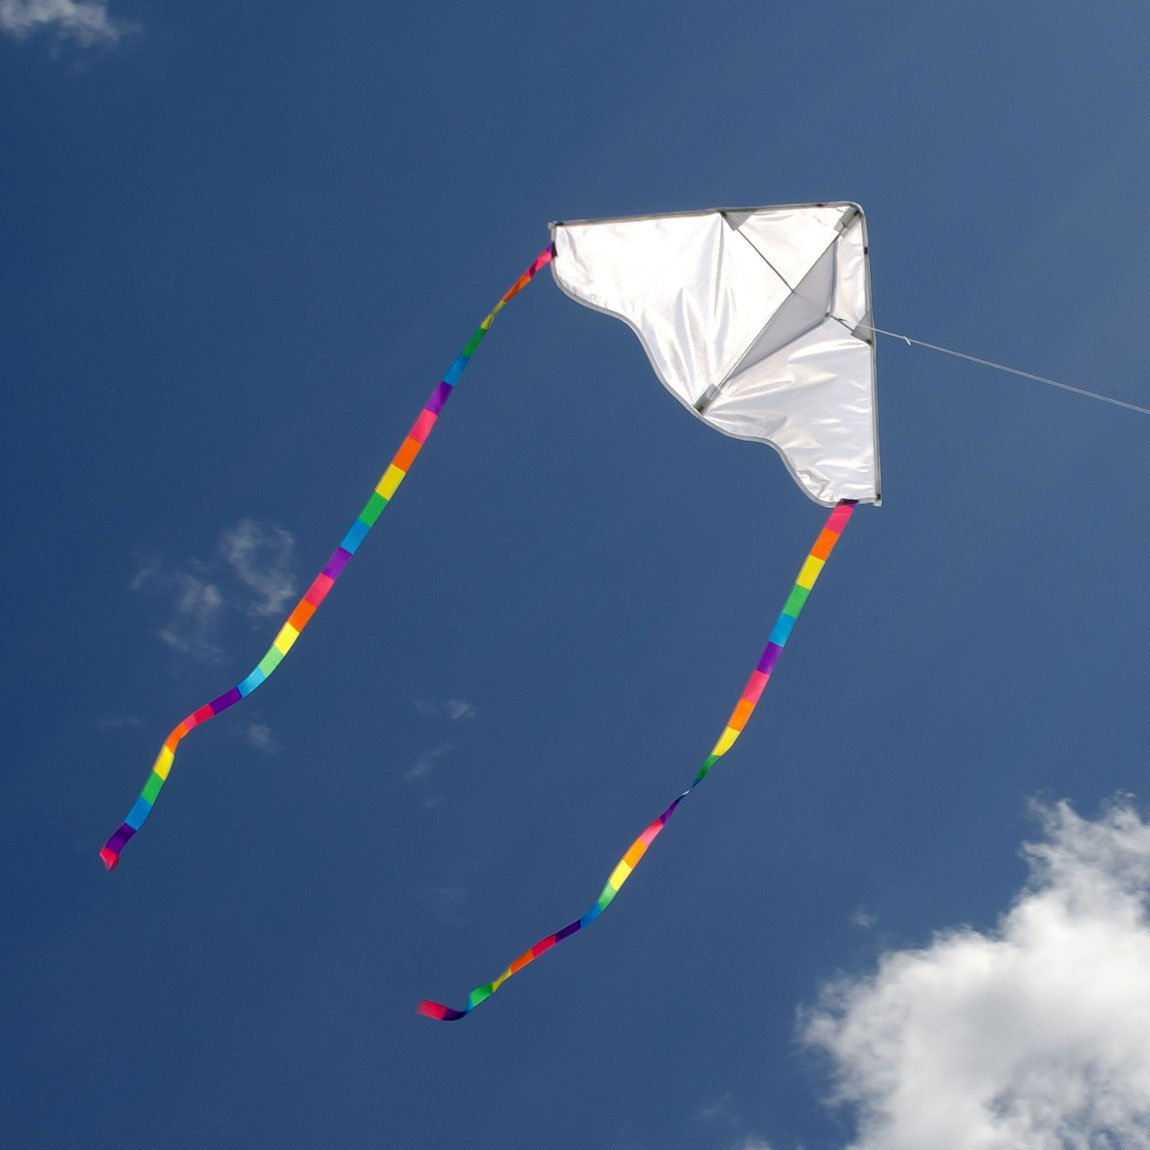 In the Breeze Coloring Delta 30 Inch Kite - 50 Piece Party Pack - Single Line Kite - Includes Crayons, Kite Line and Bag - Creative Fun for Kids and Adults by In the Breeze (Image #2)